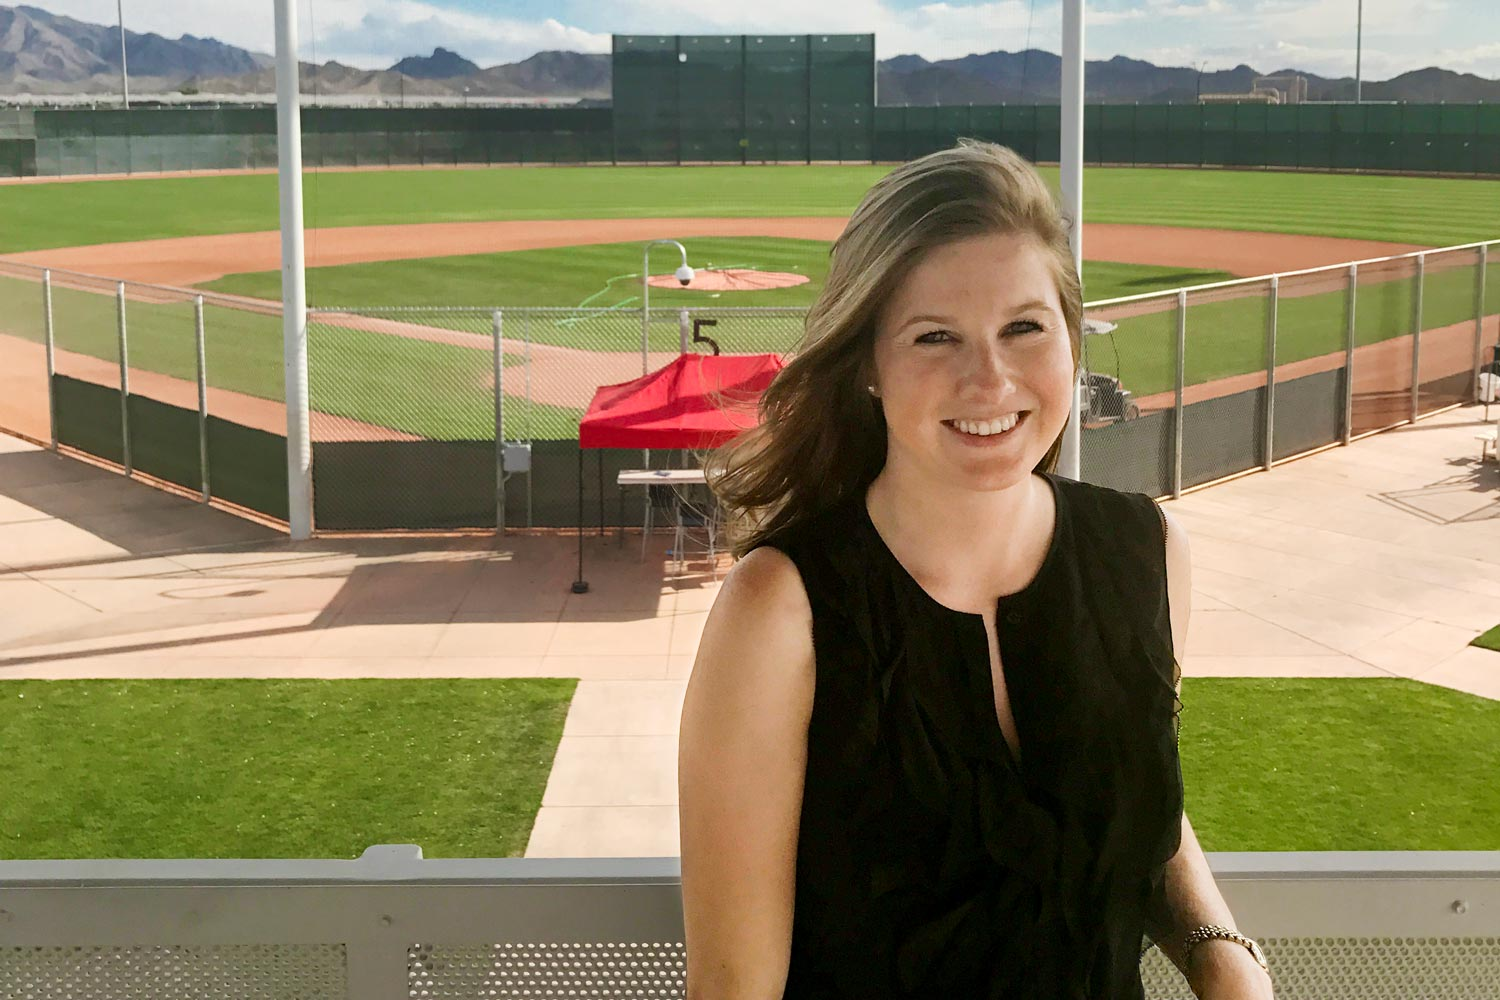 Haley Alvarez, a scouting coordinator for the Oakland Athletics, got her start in baseball analytics while a student at UVA.